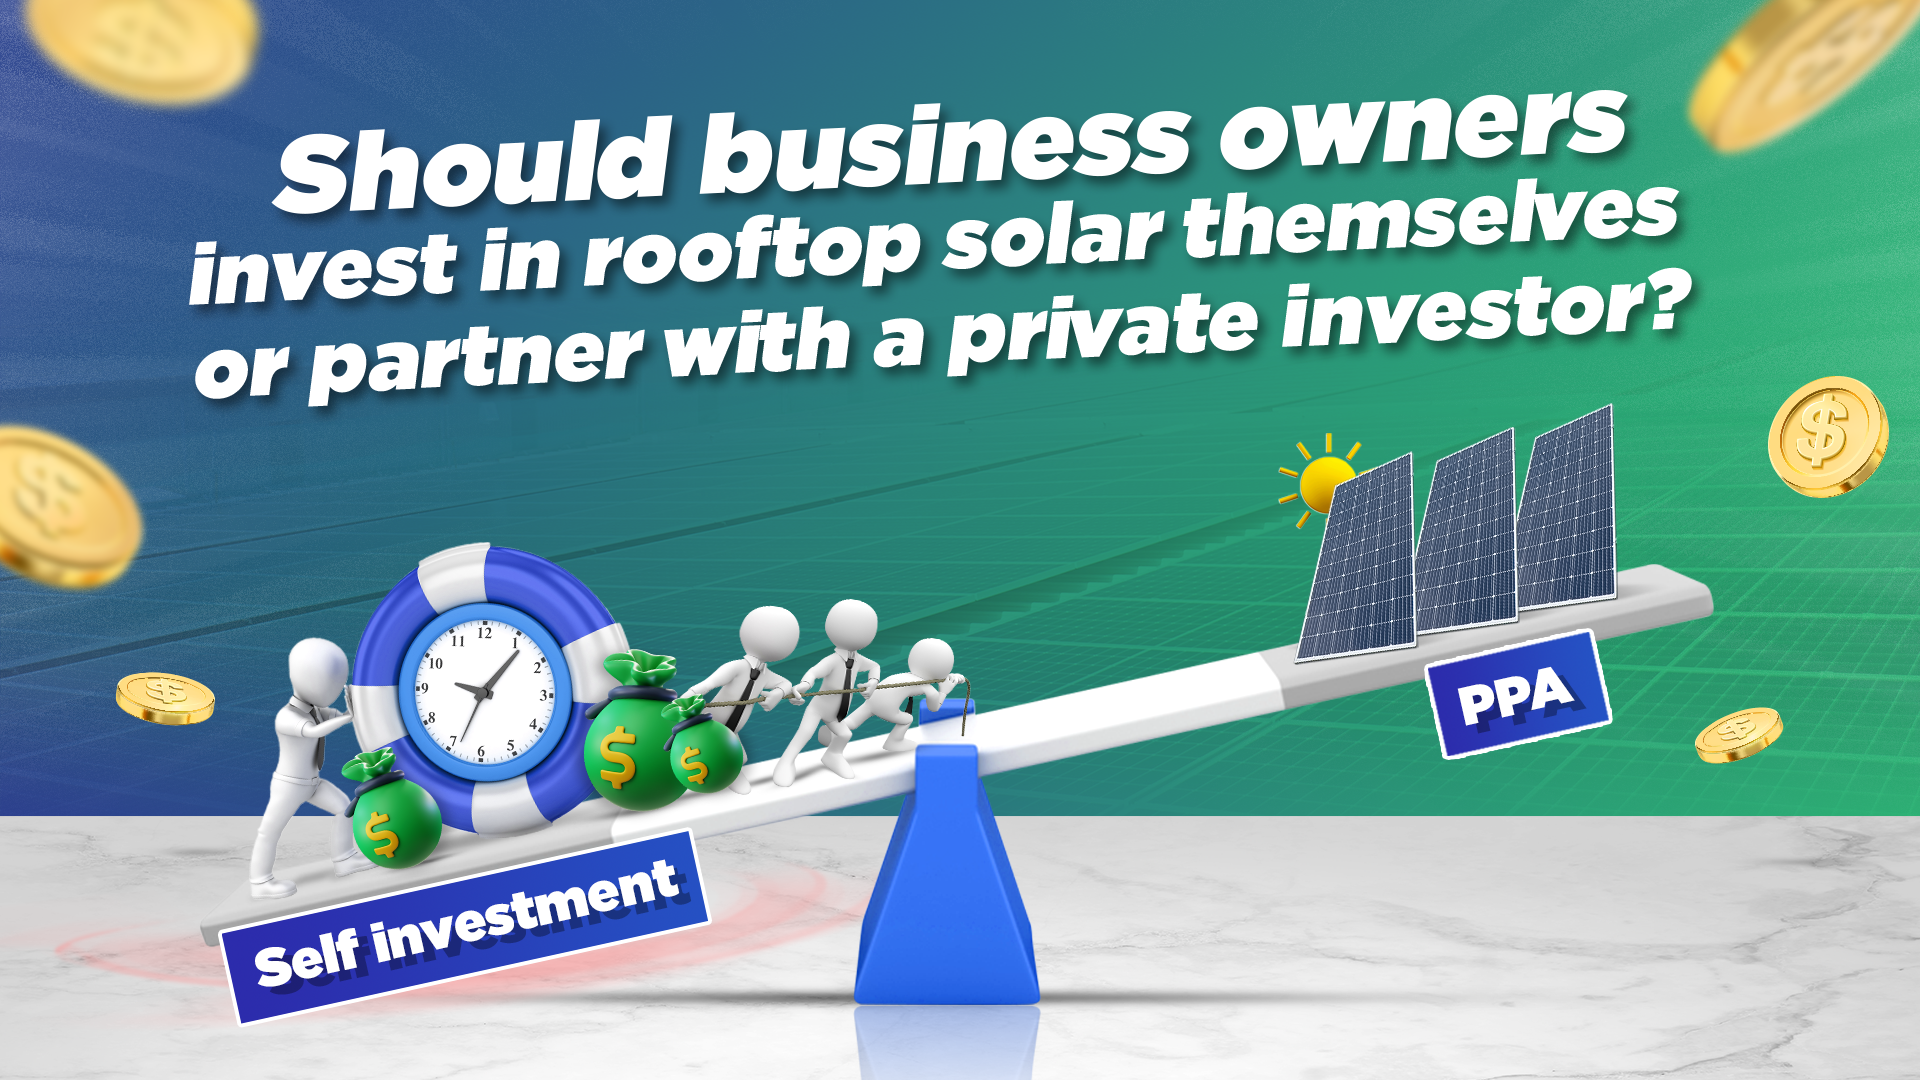 Should business owners invest in rooftop solar themselves or partner with a private investor?